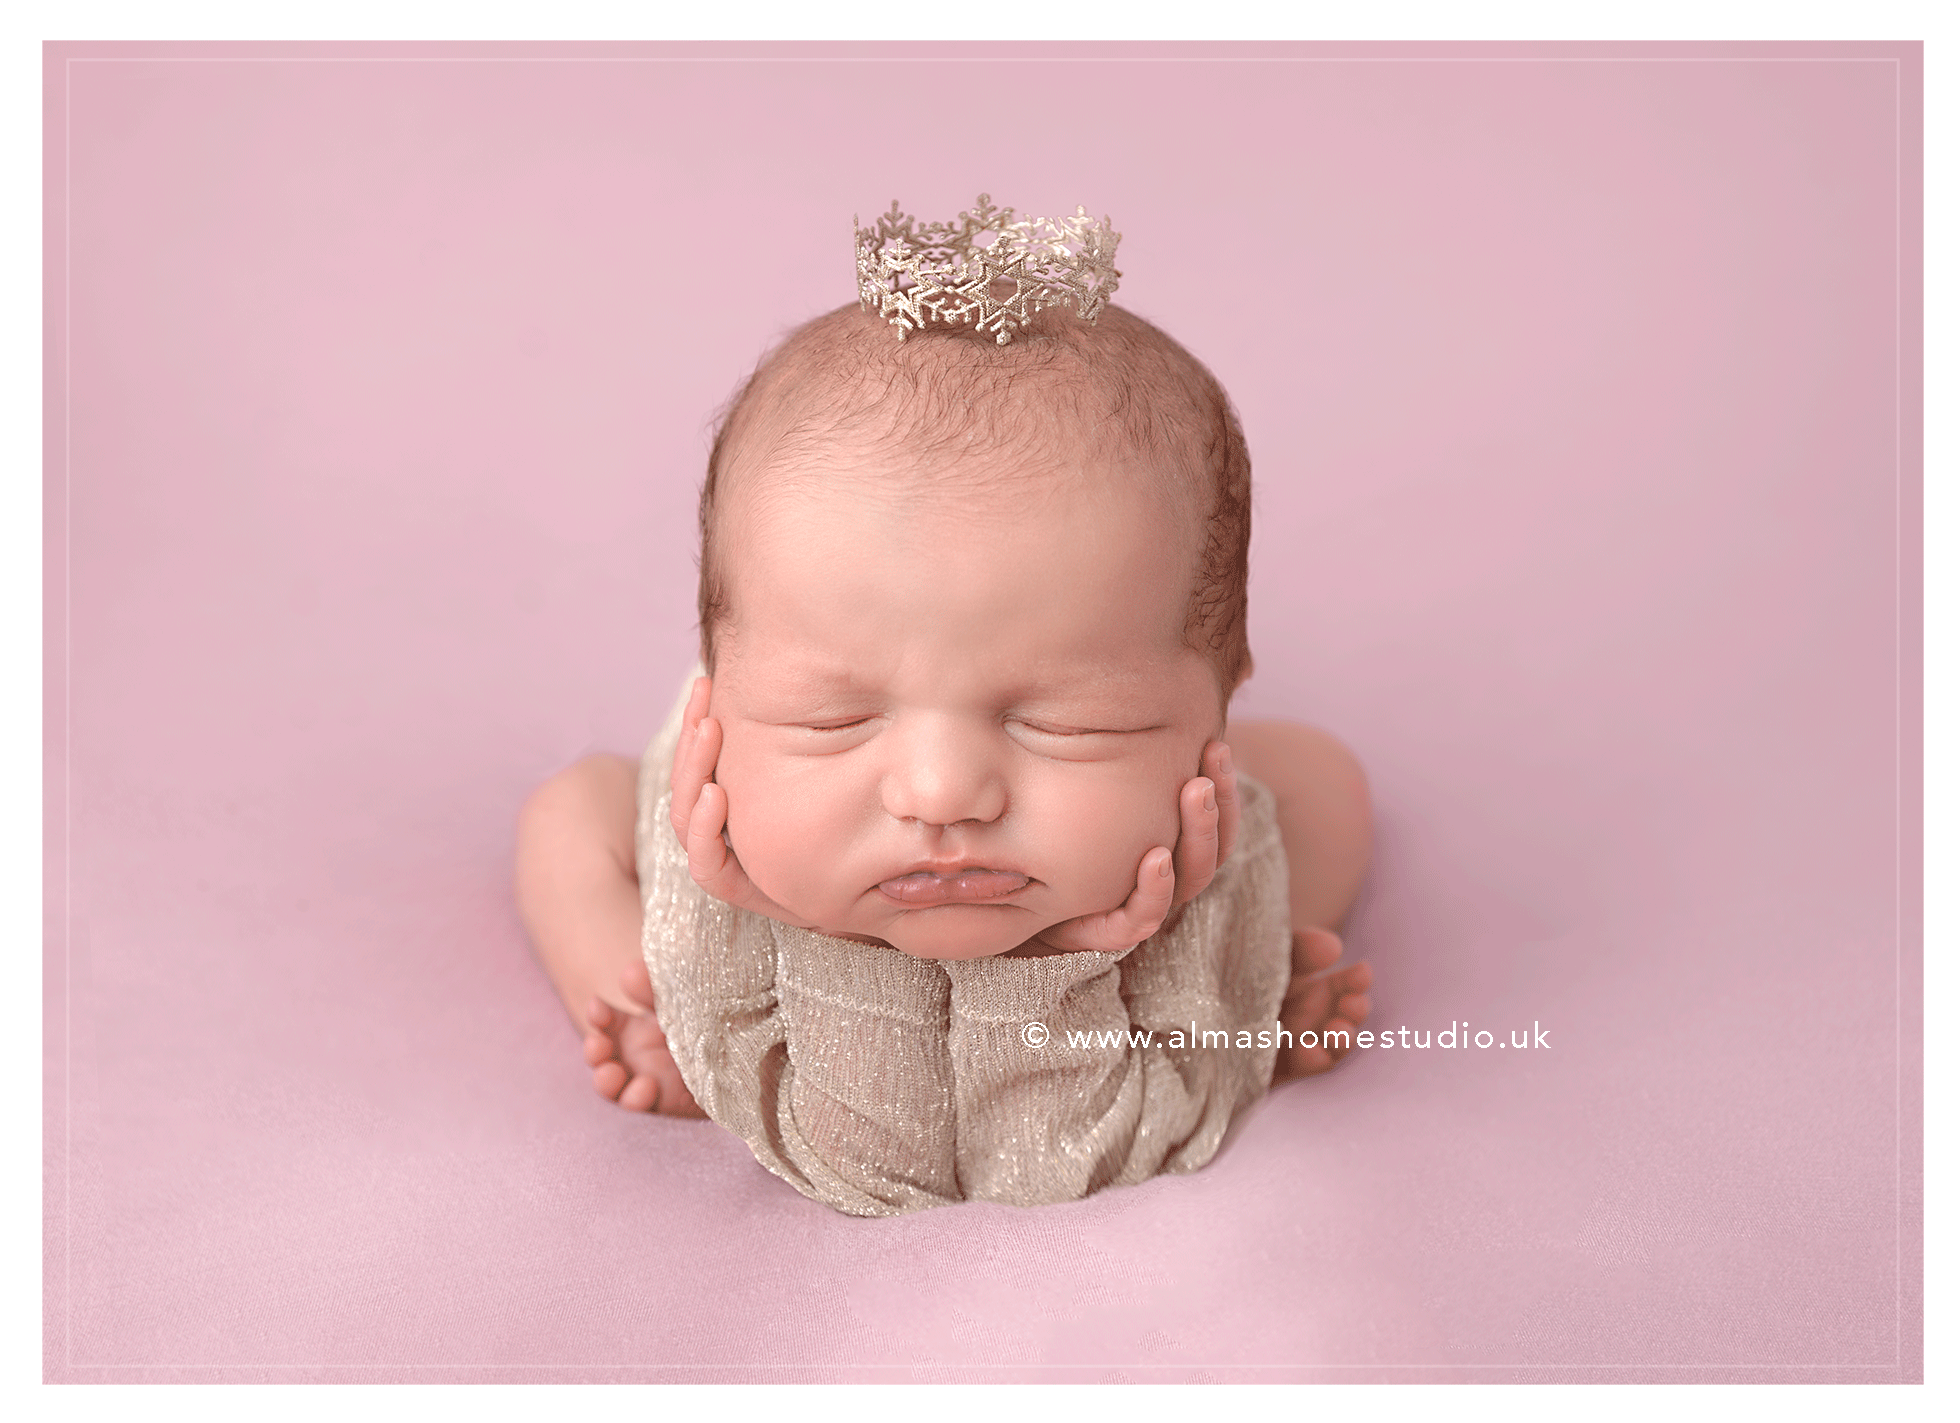 Newborn photographer near me in Blandford Forum, Dorset